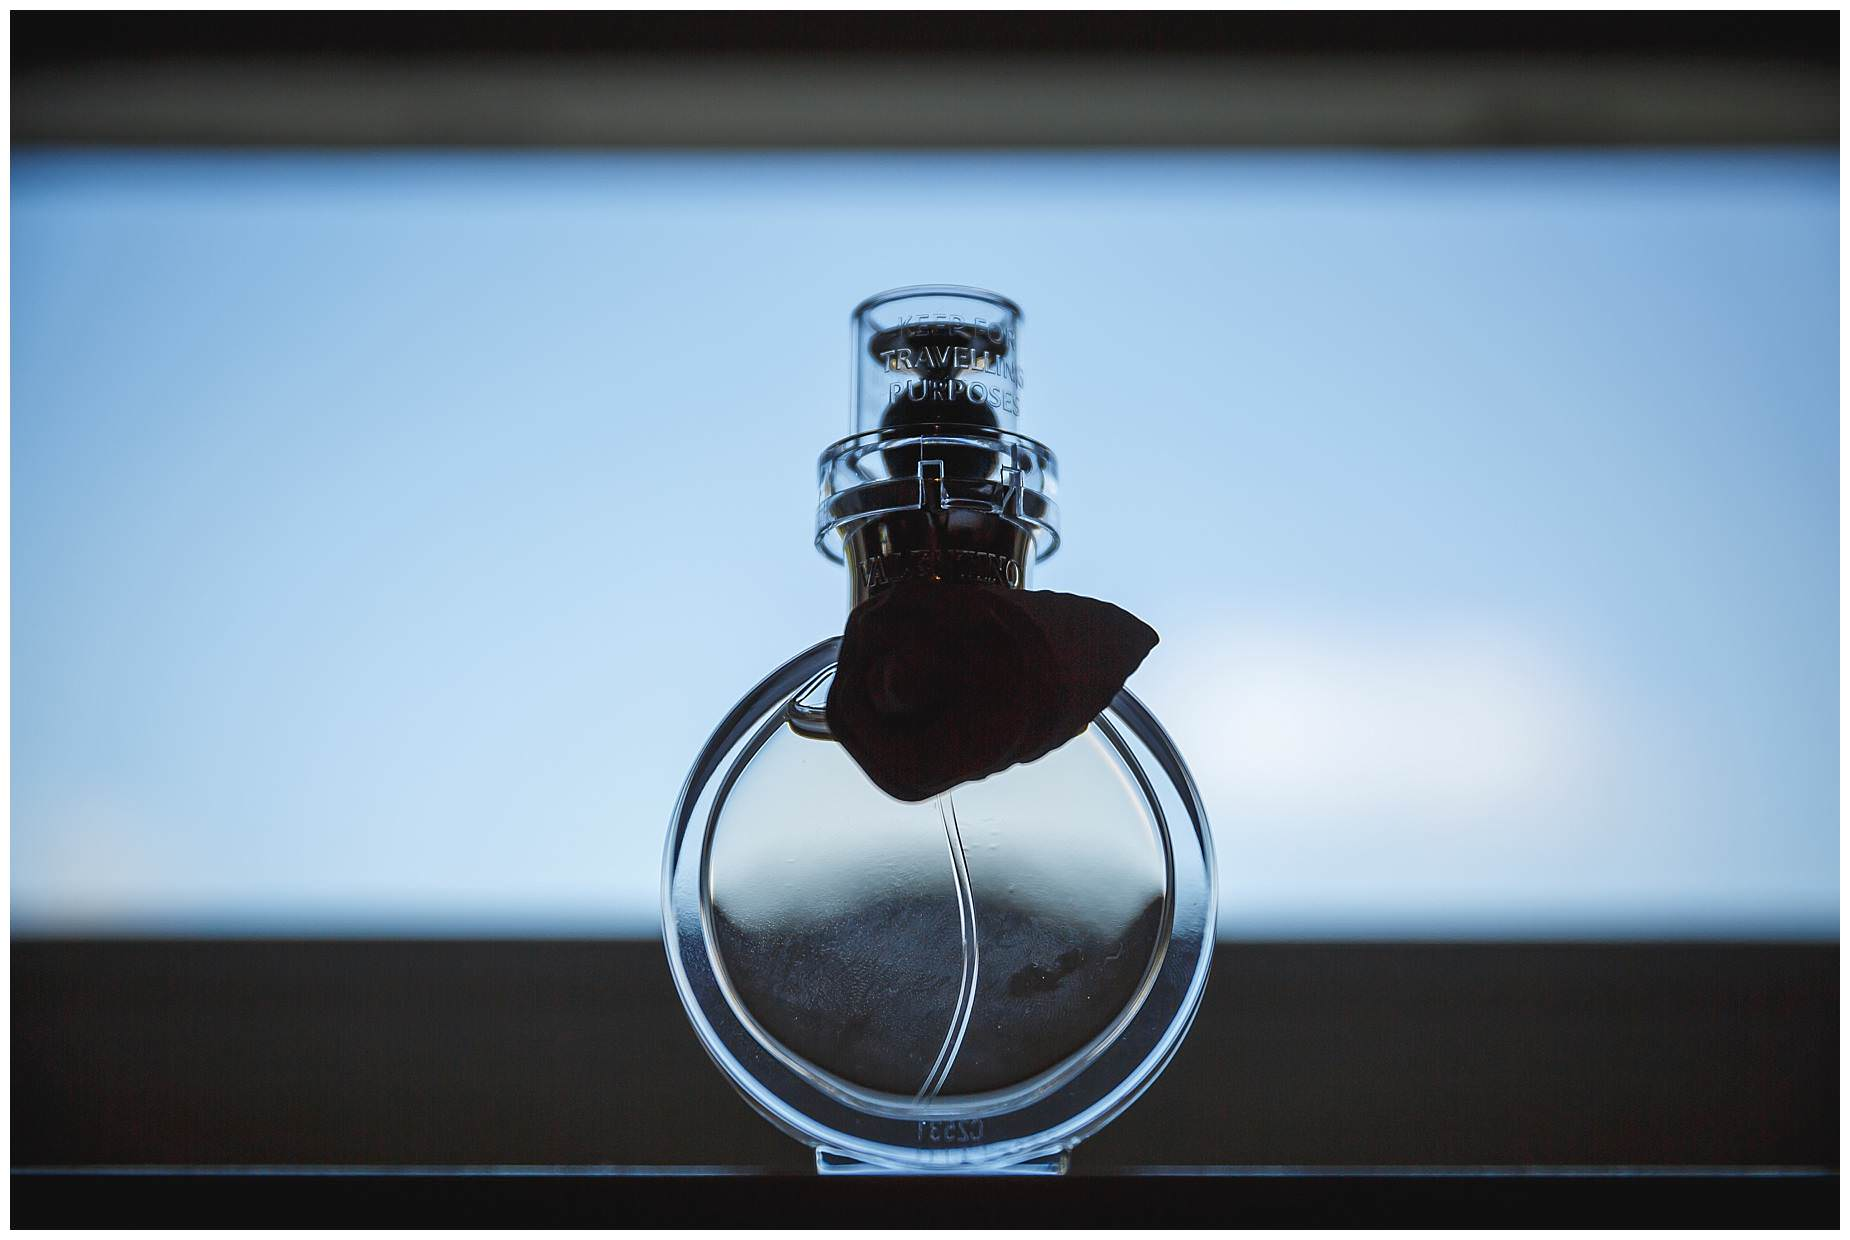 perfume bottle on window